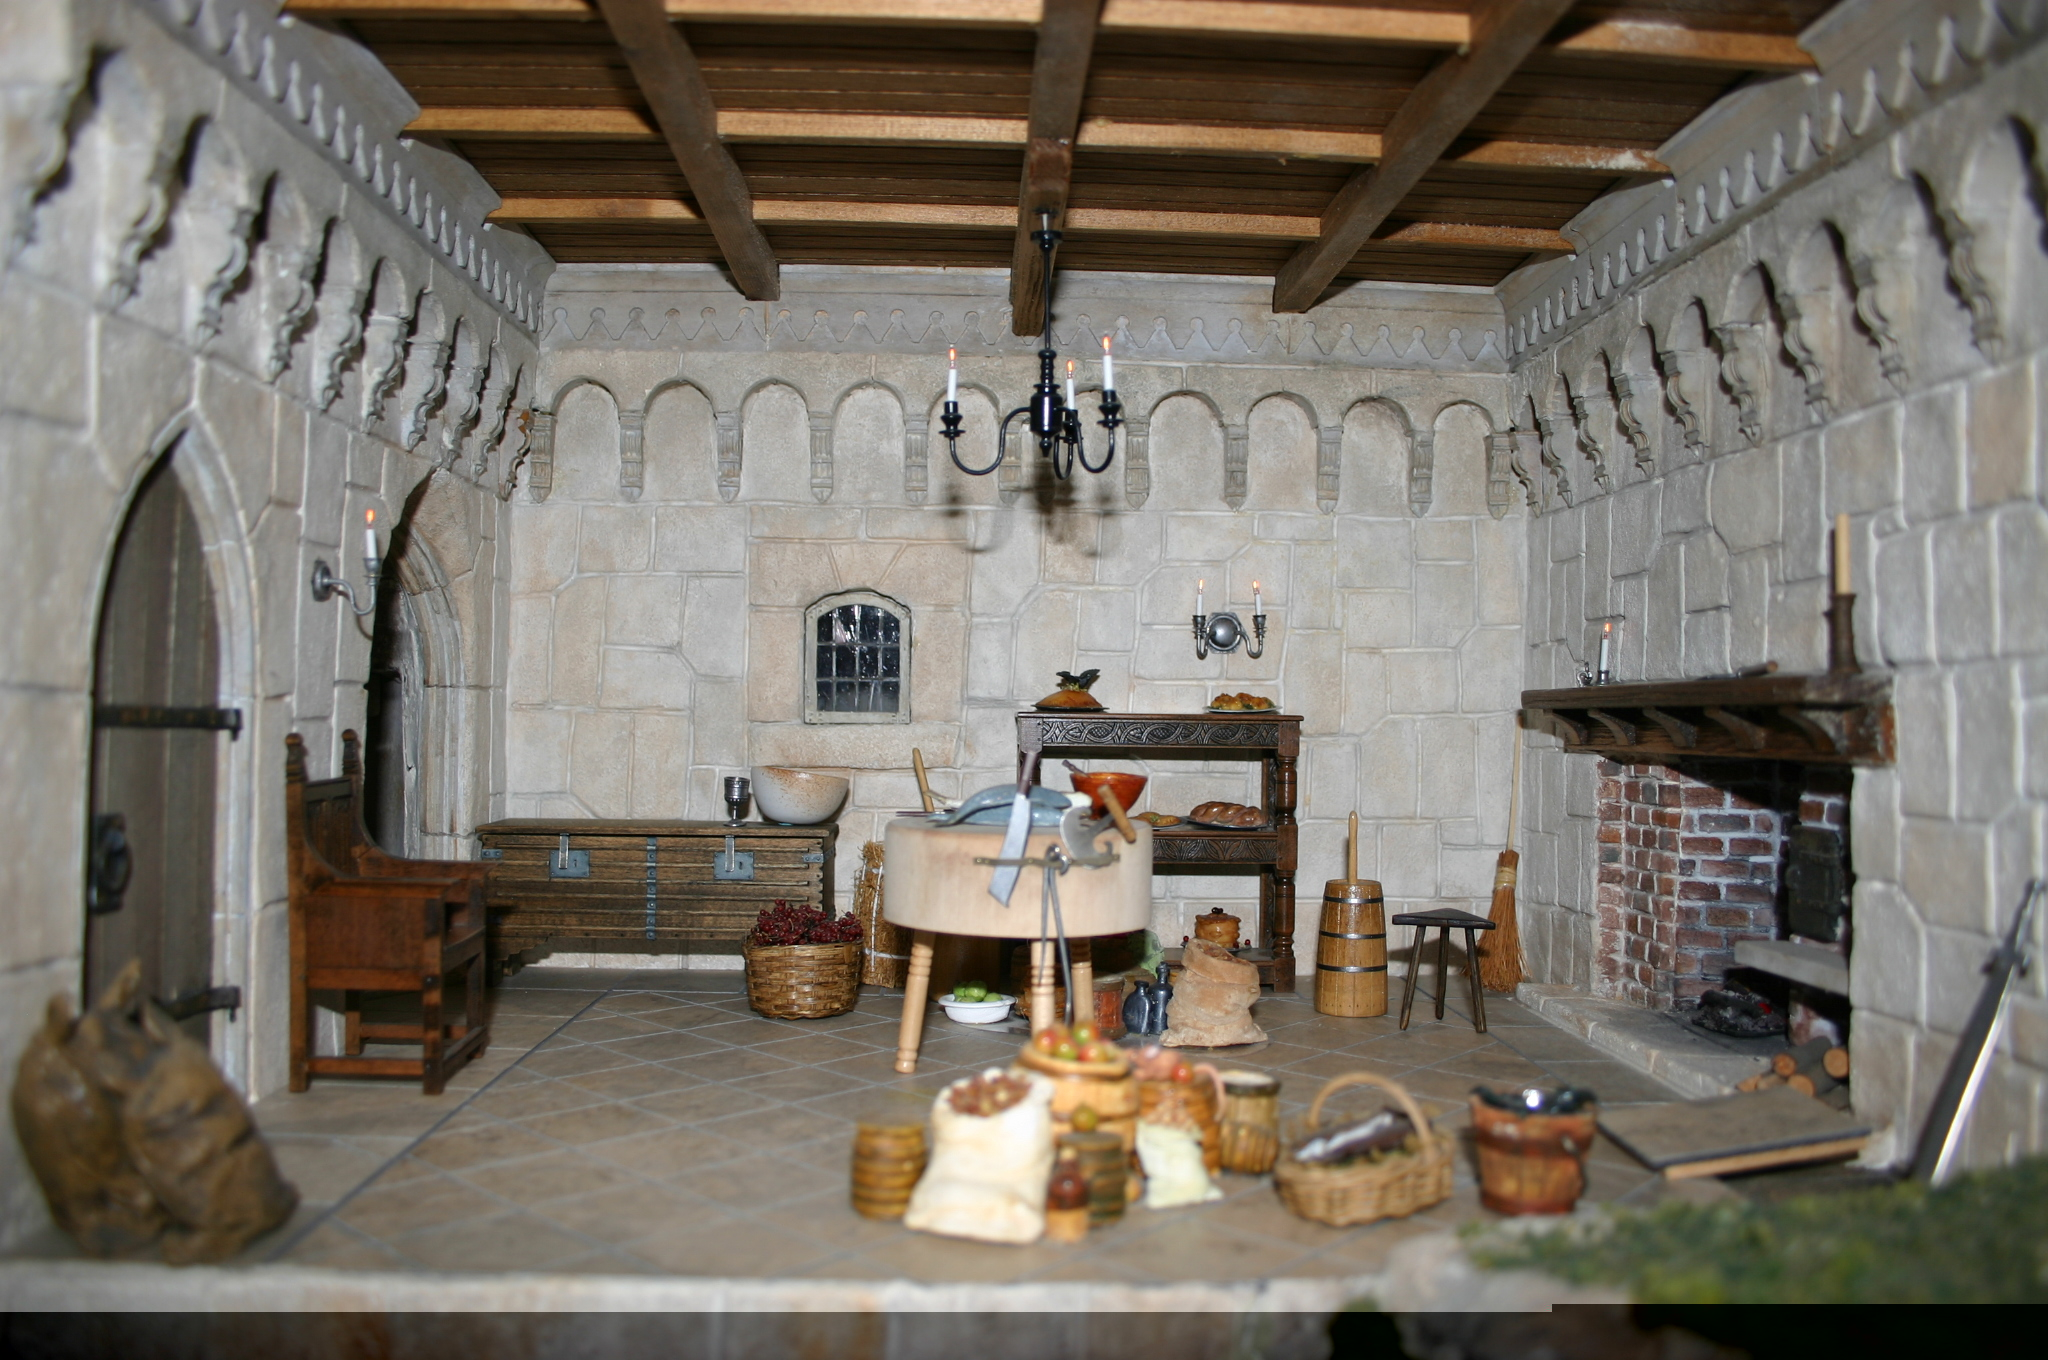 Another Room and Fireplace